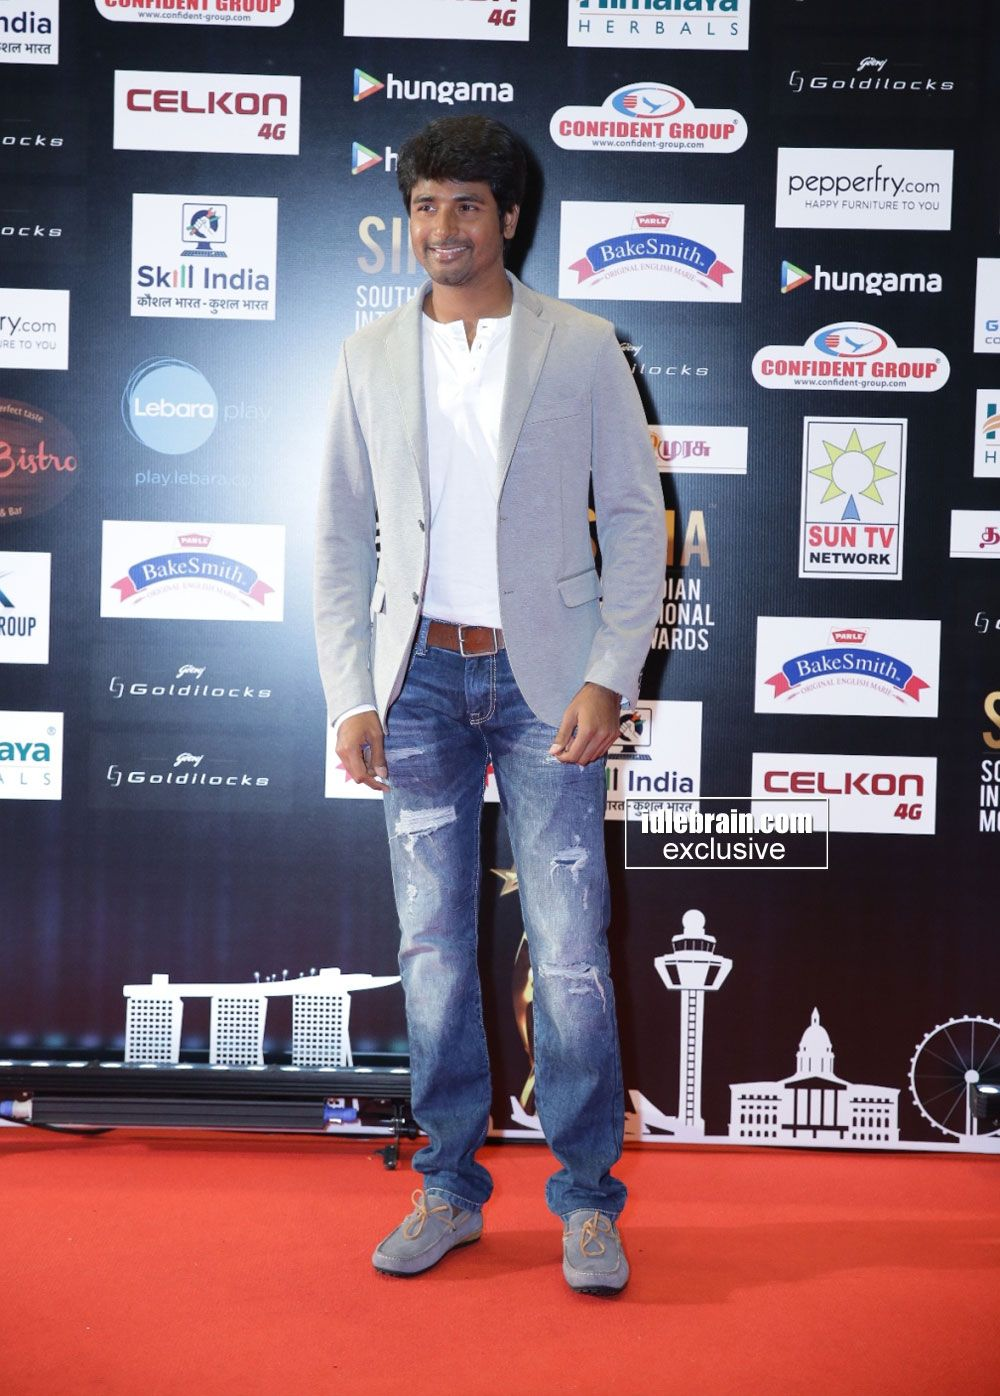 Siva Karthikeyan at South Indian International Movie Awards (SIIMA) 2016- Day 2 http://idlebrain.com/news/functions1/celebrities-siima20161/index.html